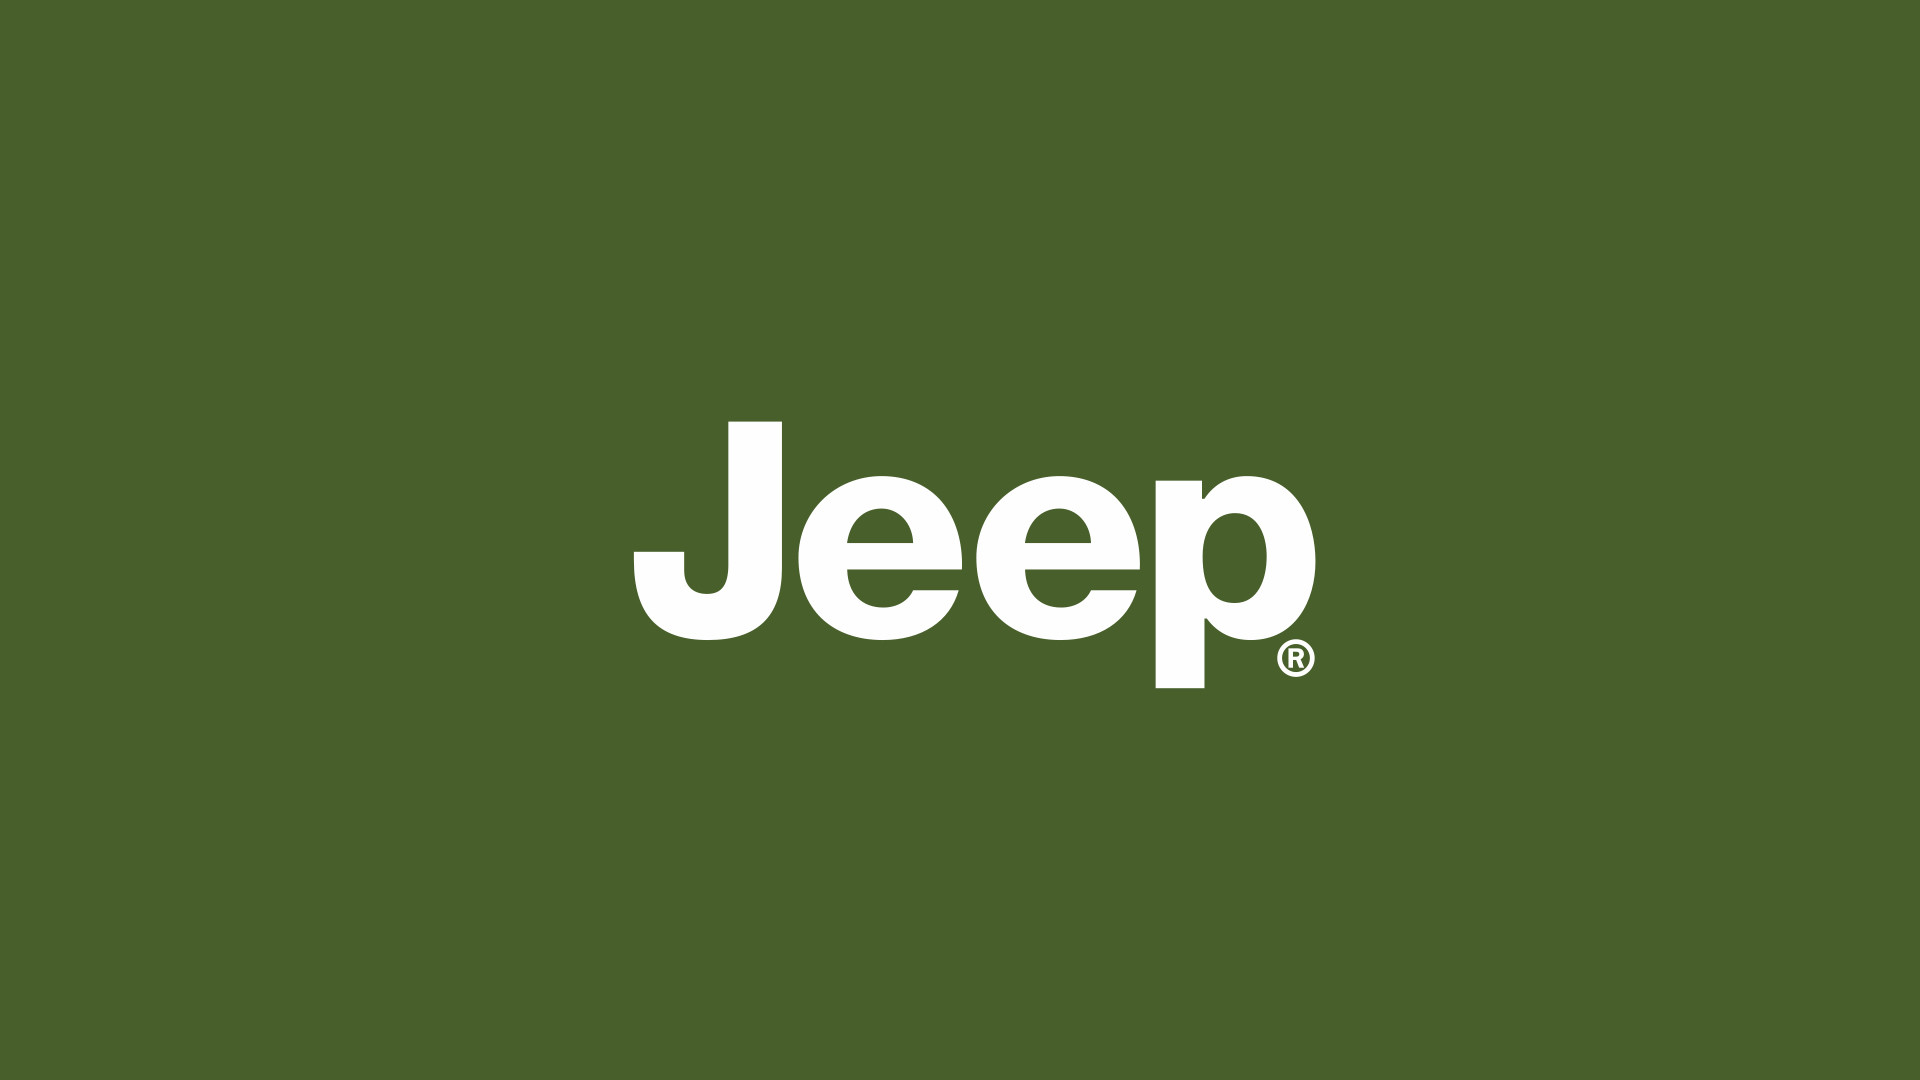 Res: 1920x1080, Free download jeep logo green wallpapers hd.